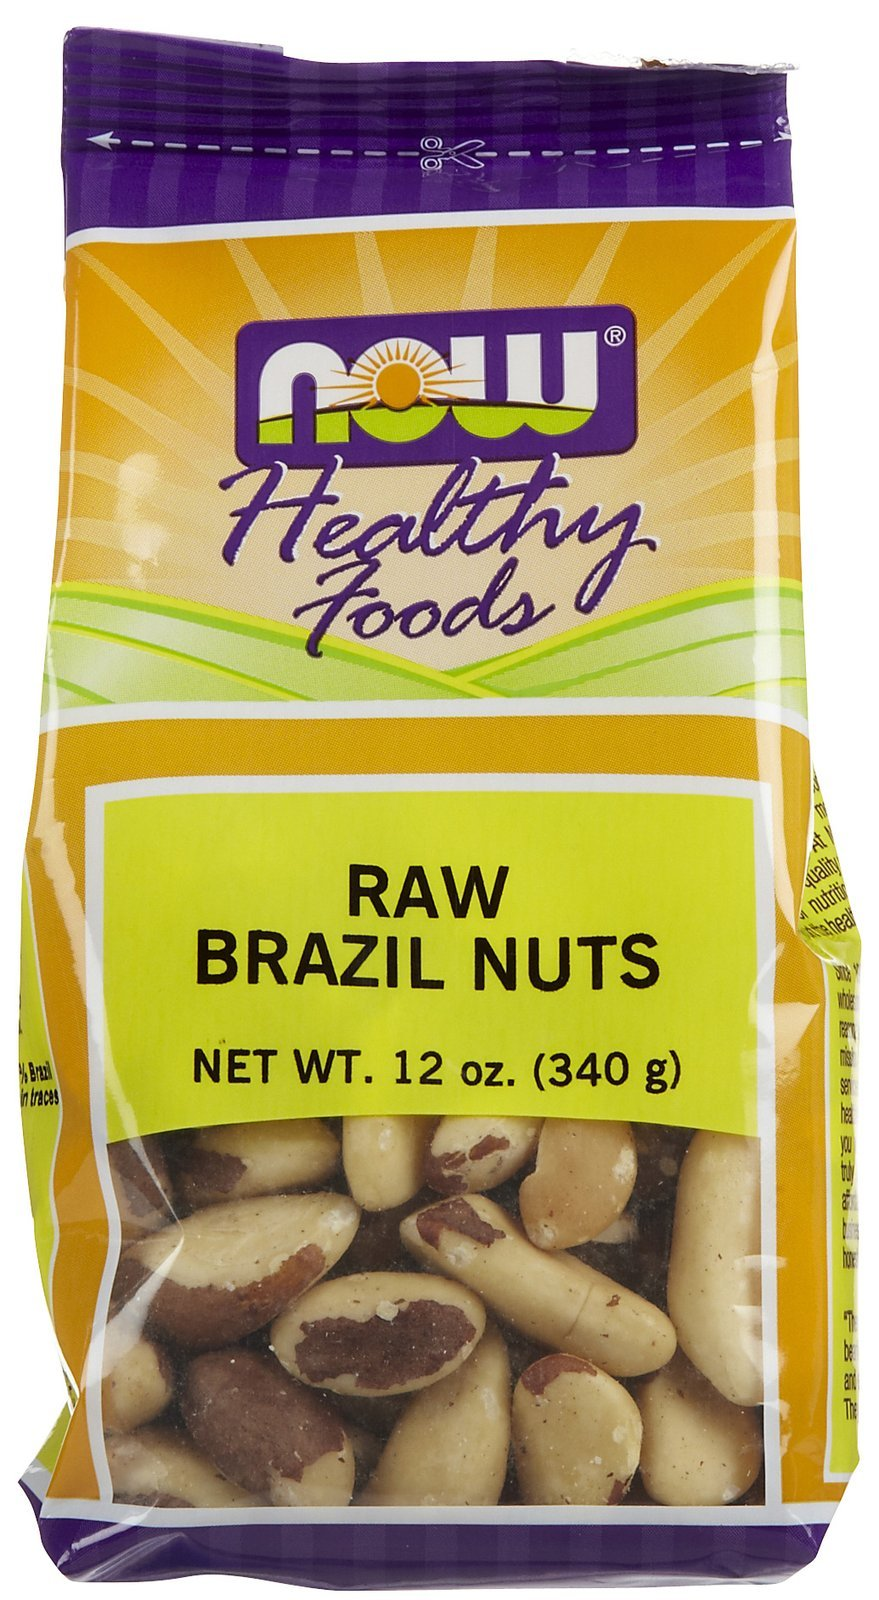 Brazil Nuts, Raw 12 oz, From NOW ( 2-Pack)